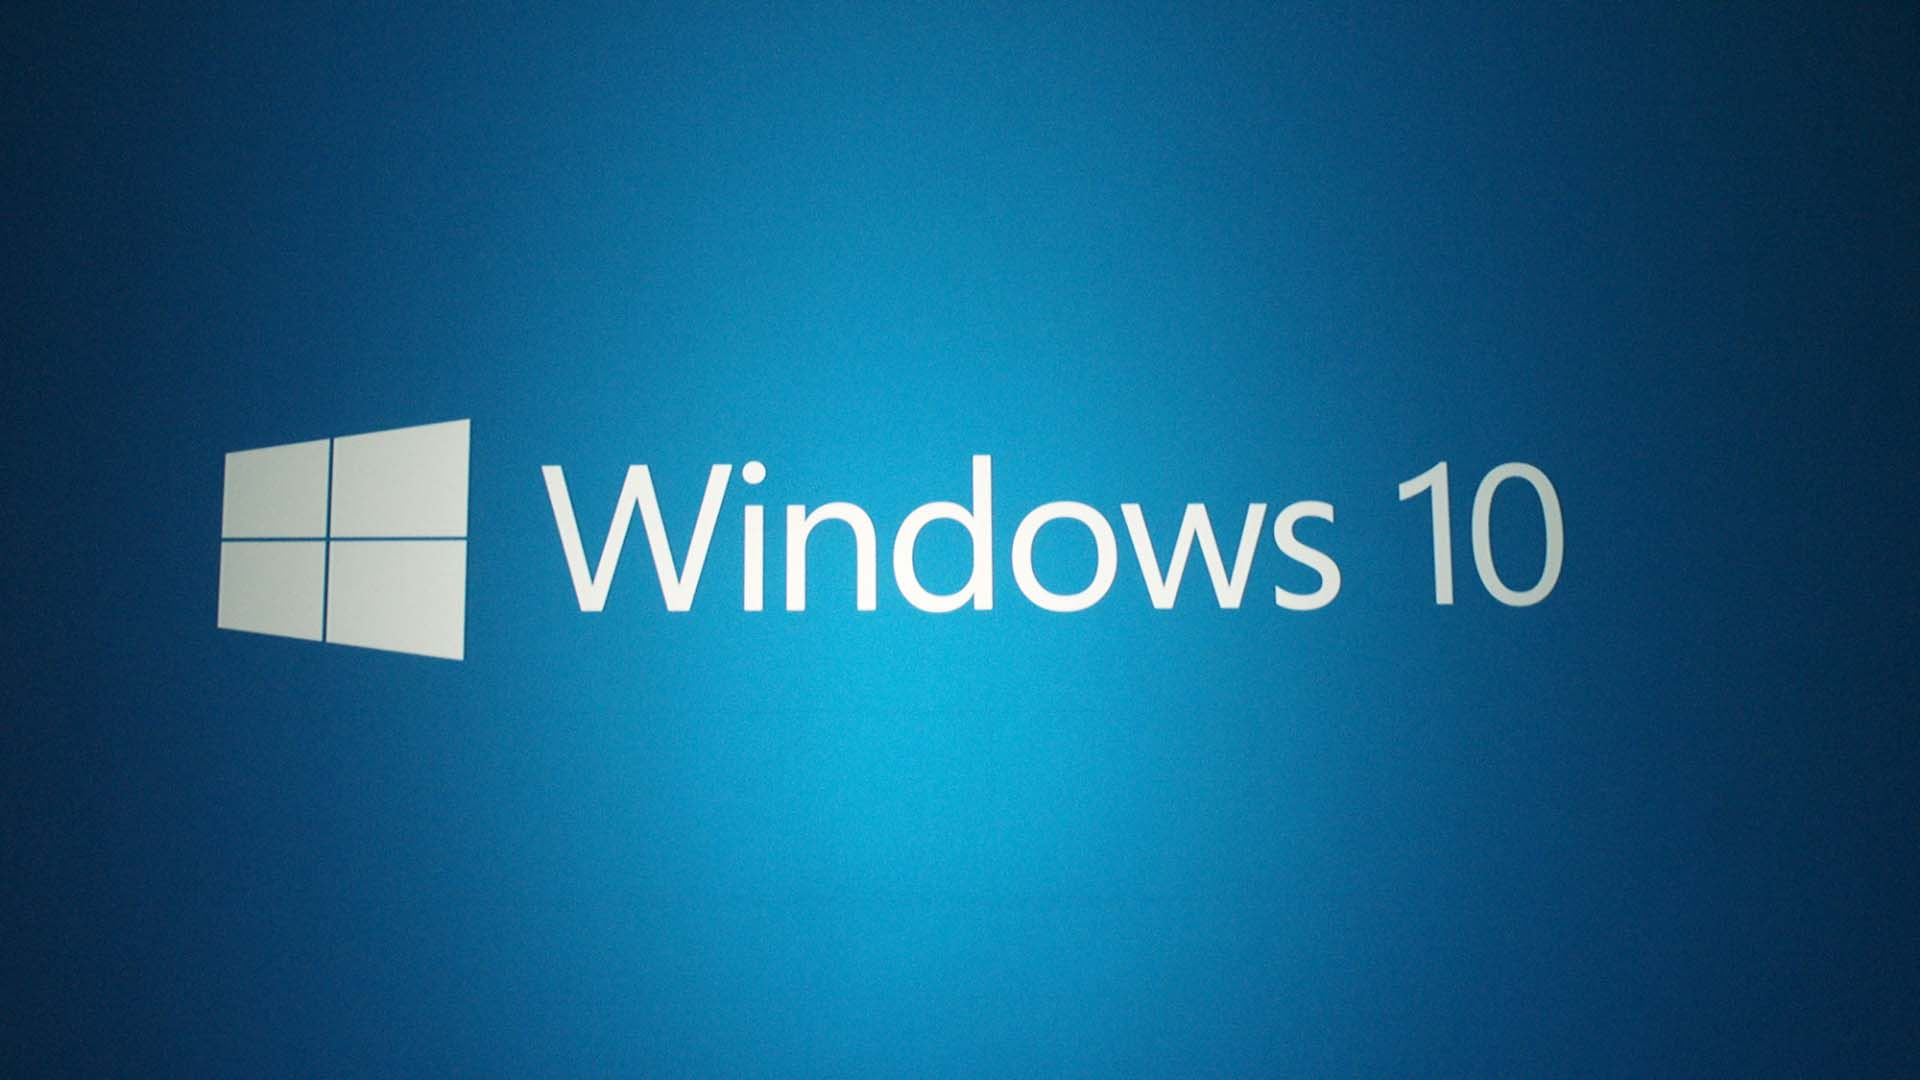 Blue windows 10 wallpaper